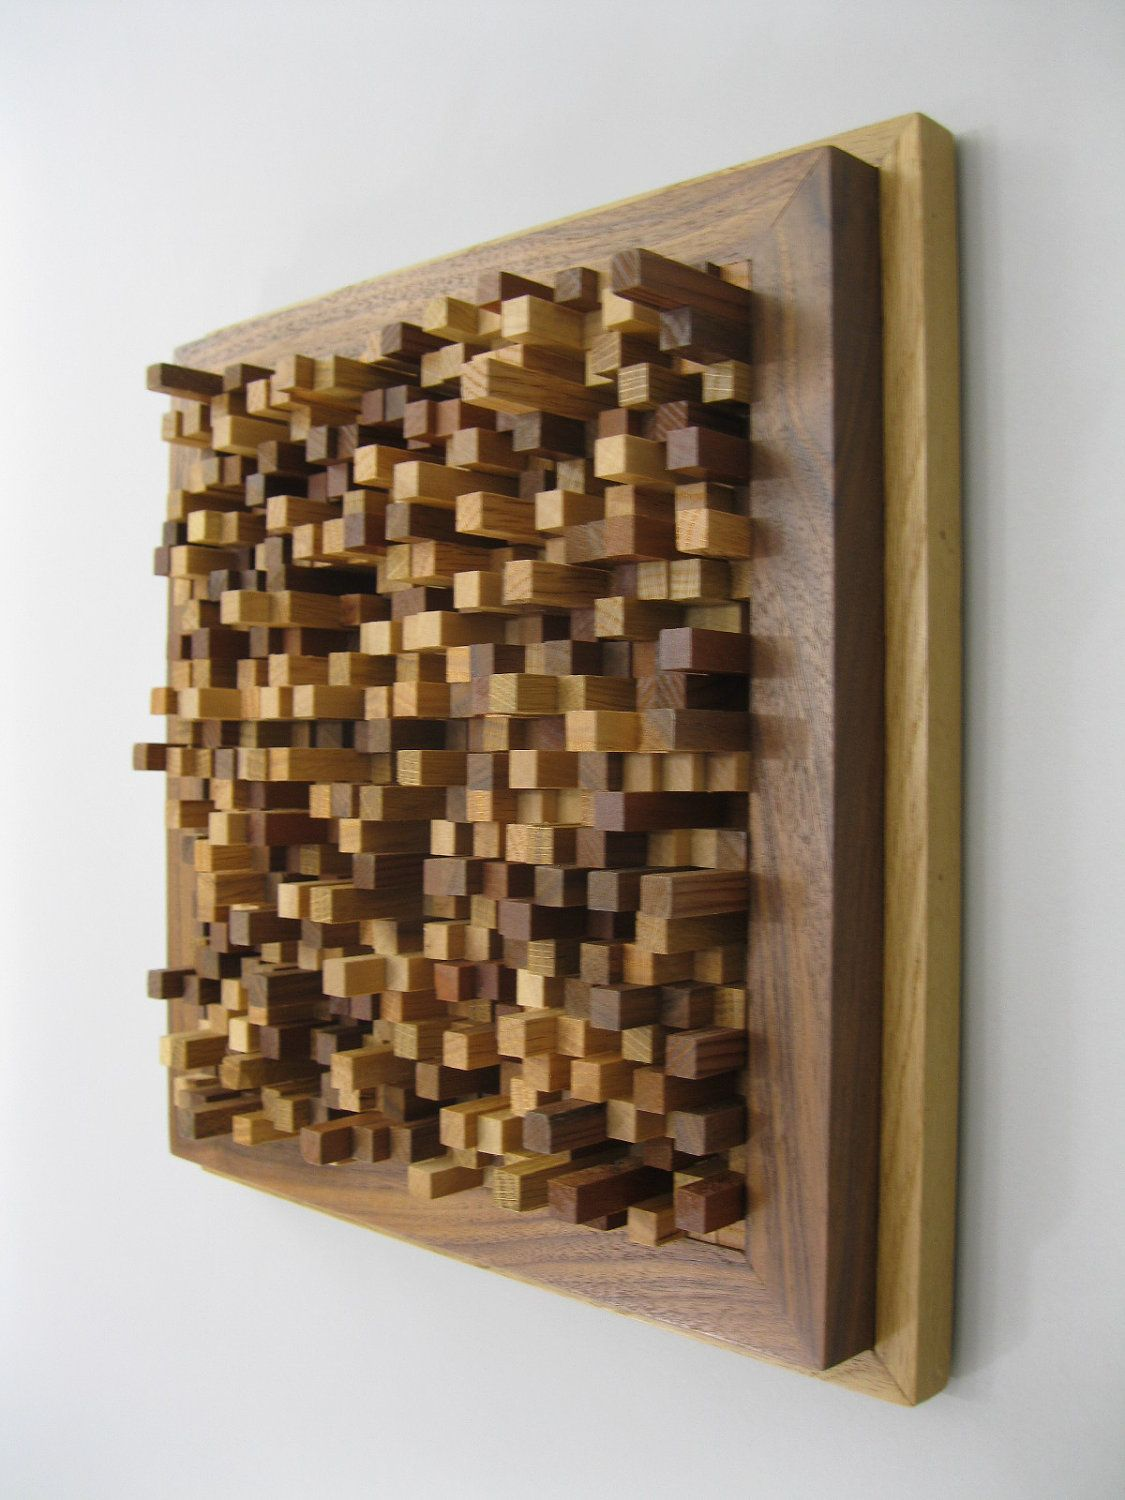 Modern Wood Wall Hanging Sculpture 15 Off At Checkout 18700 Check Out The End Of World Sale In Rest My Shop 22000 Via Etsy